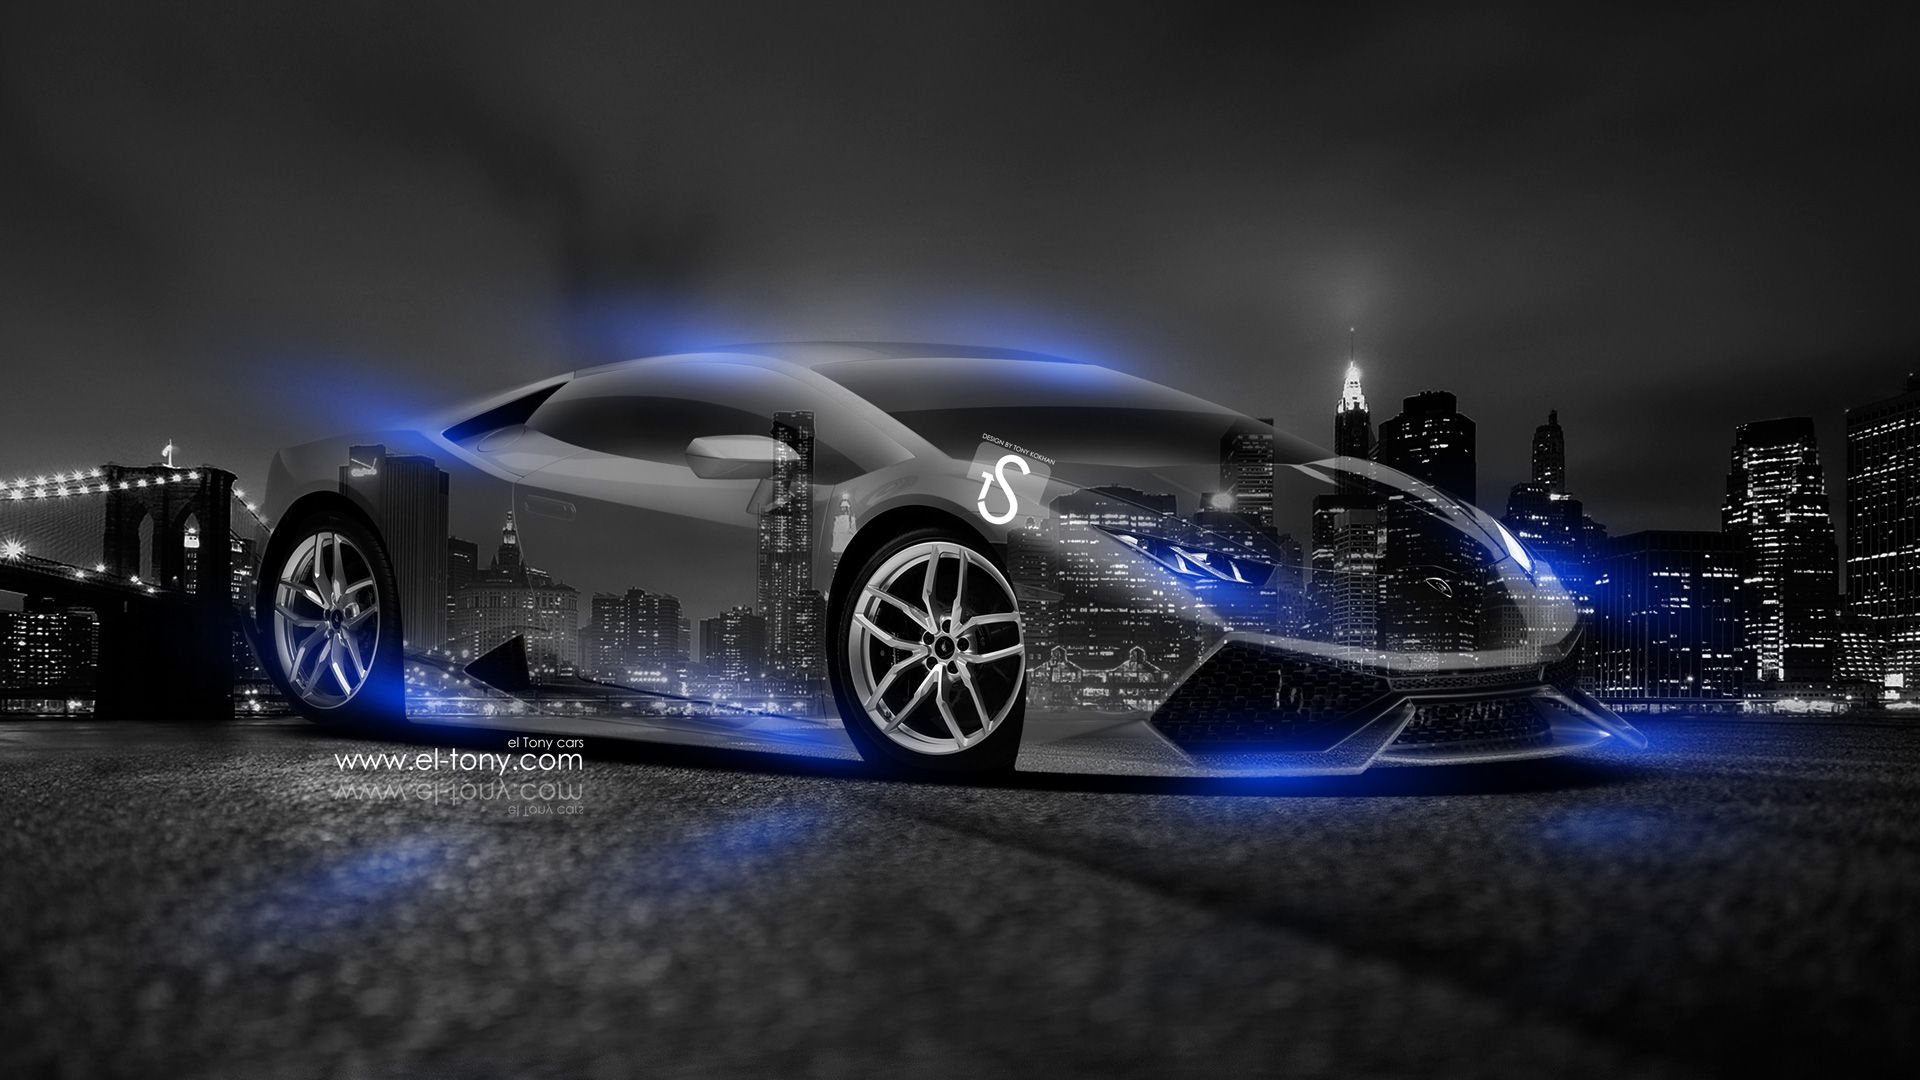 Black Lamborghini With Neon Blue Lights | Lamborghini Huracan Crystal City  Car 2014 Blue Neon Design By Tony .